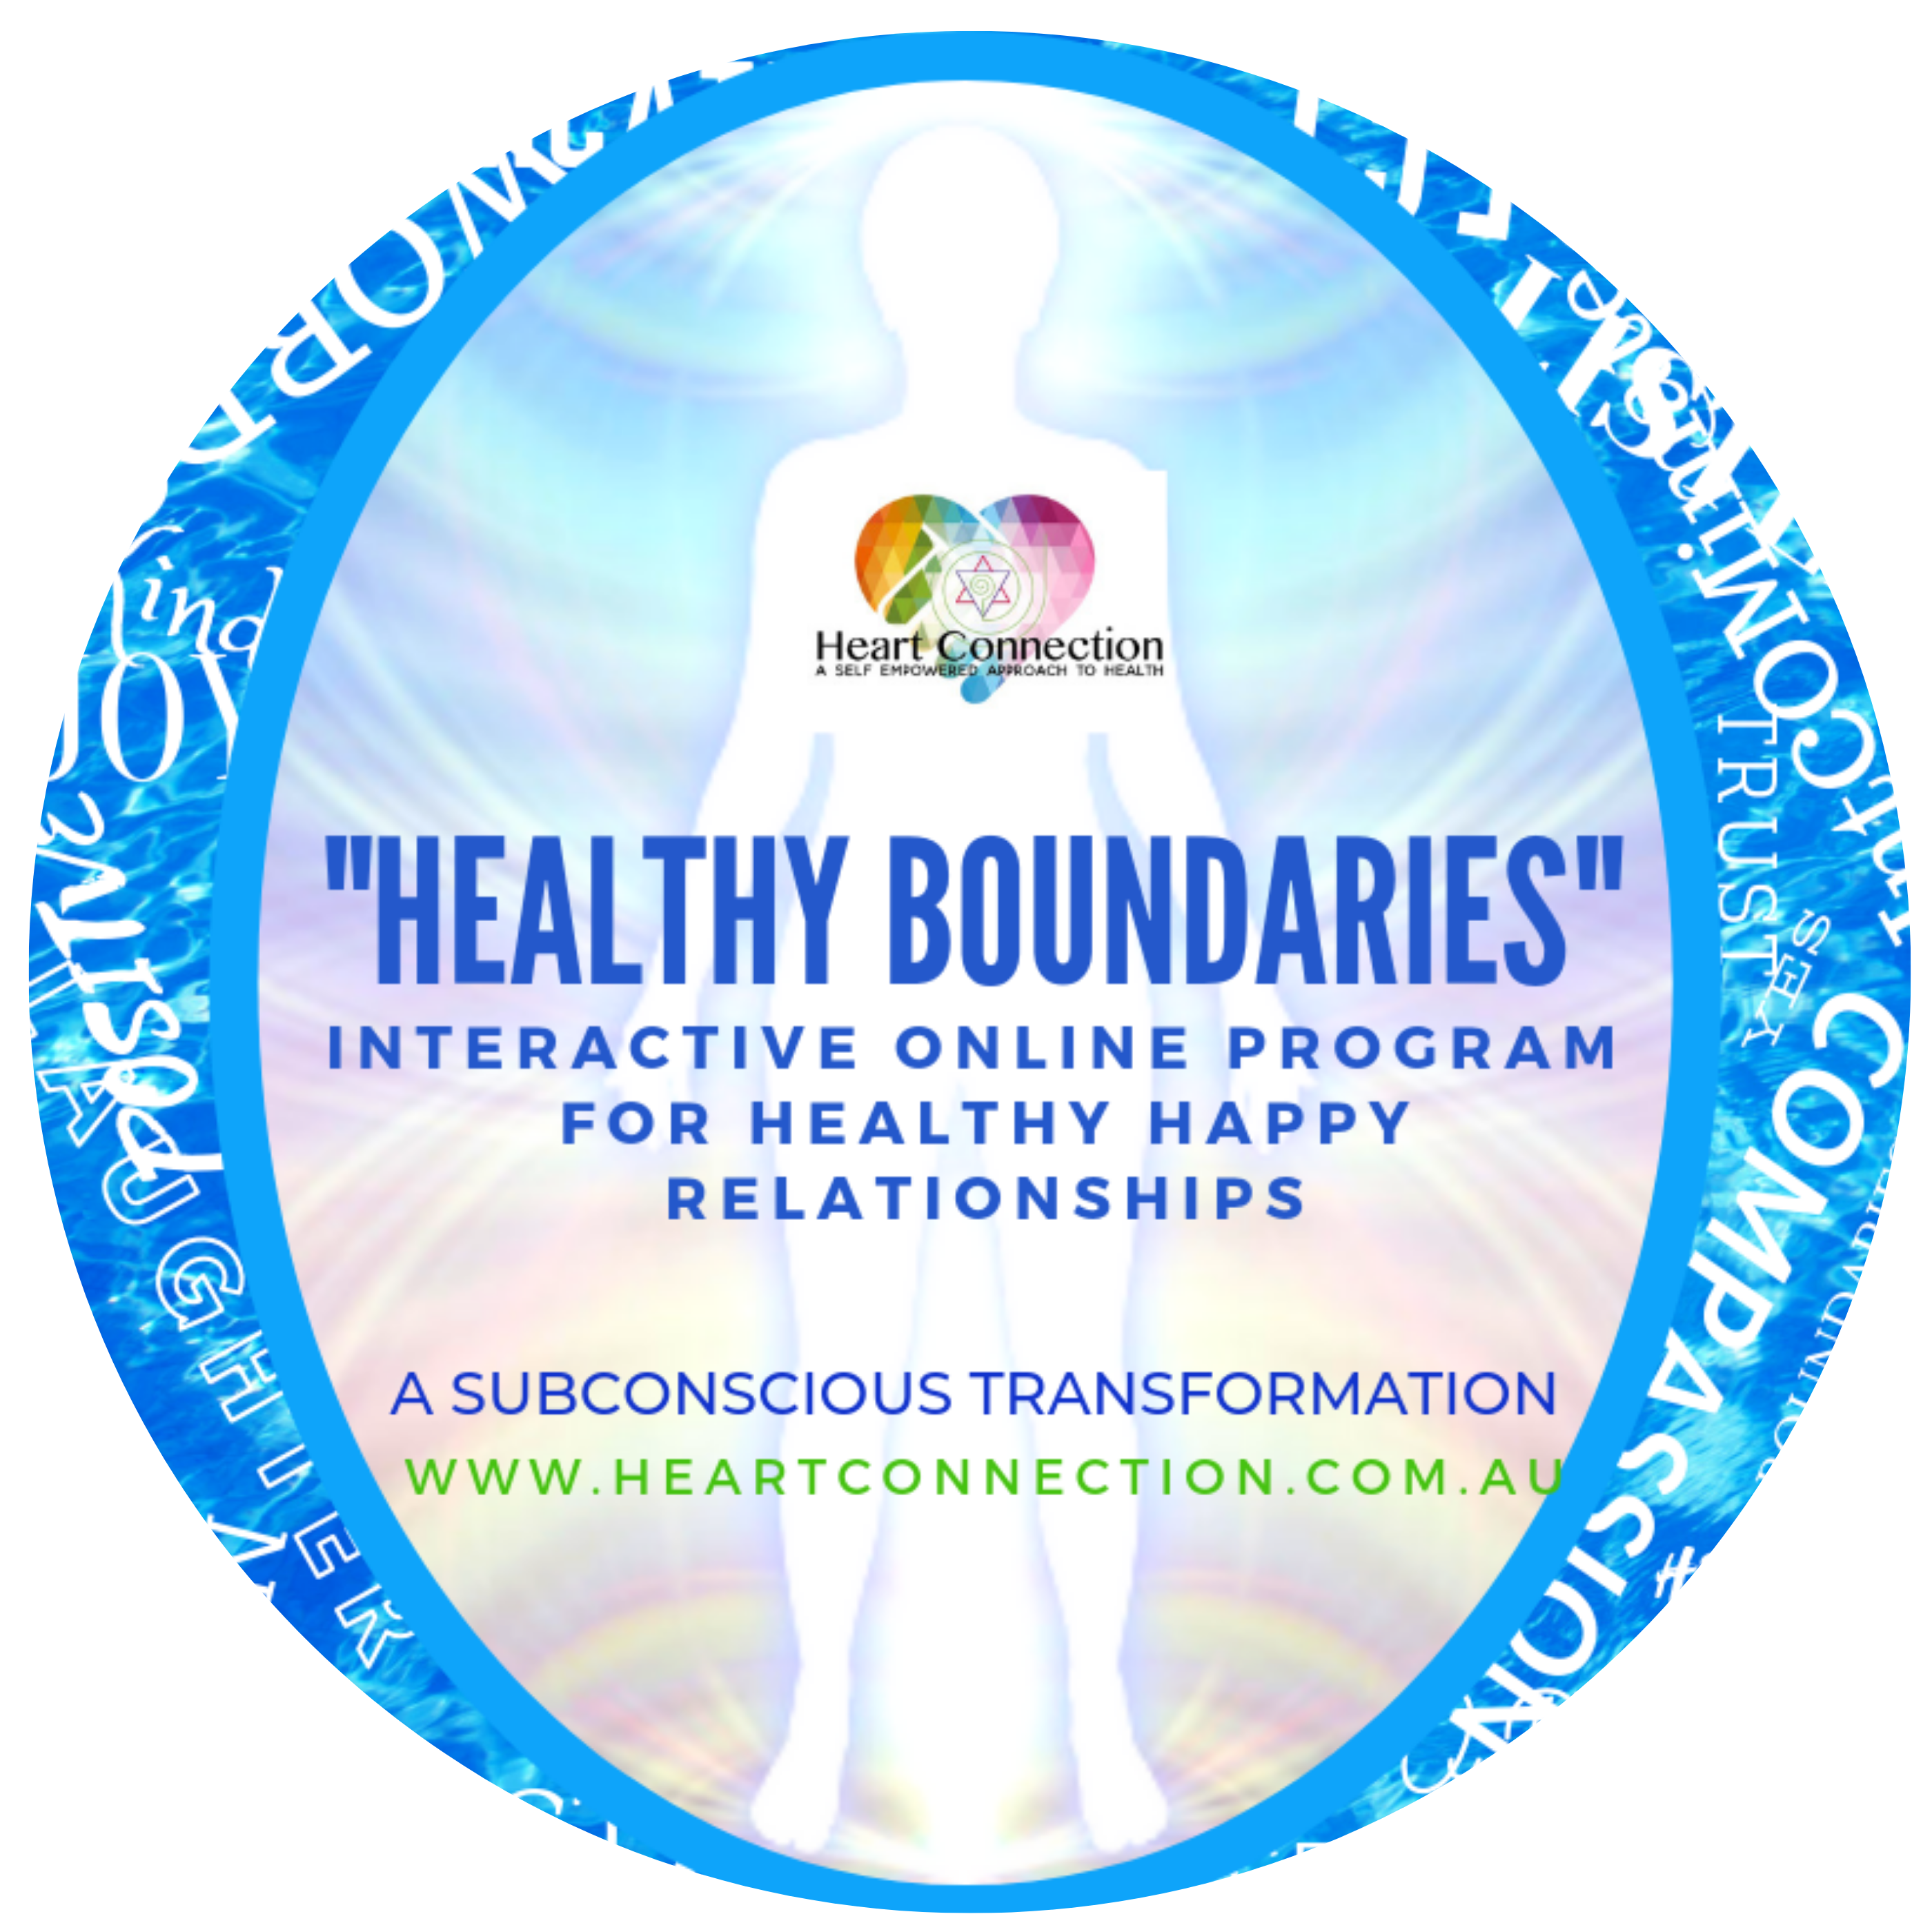 HEALTHY BOUNDARIES HEALTHY HAPPY RELATIONSHIPS